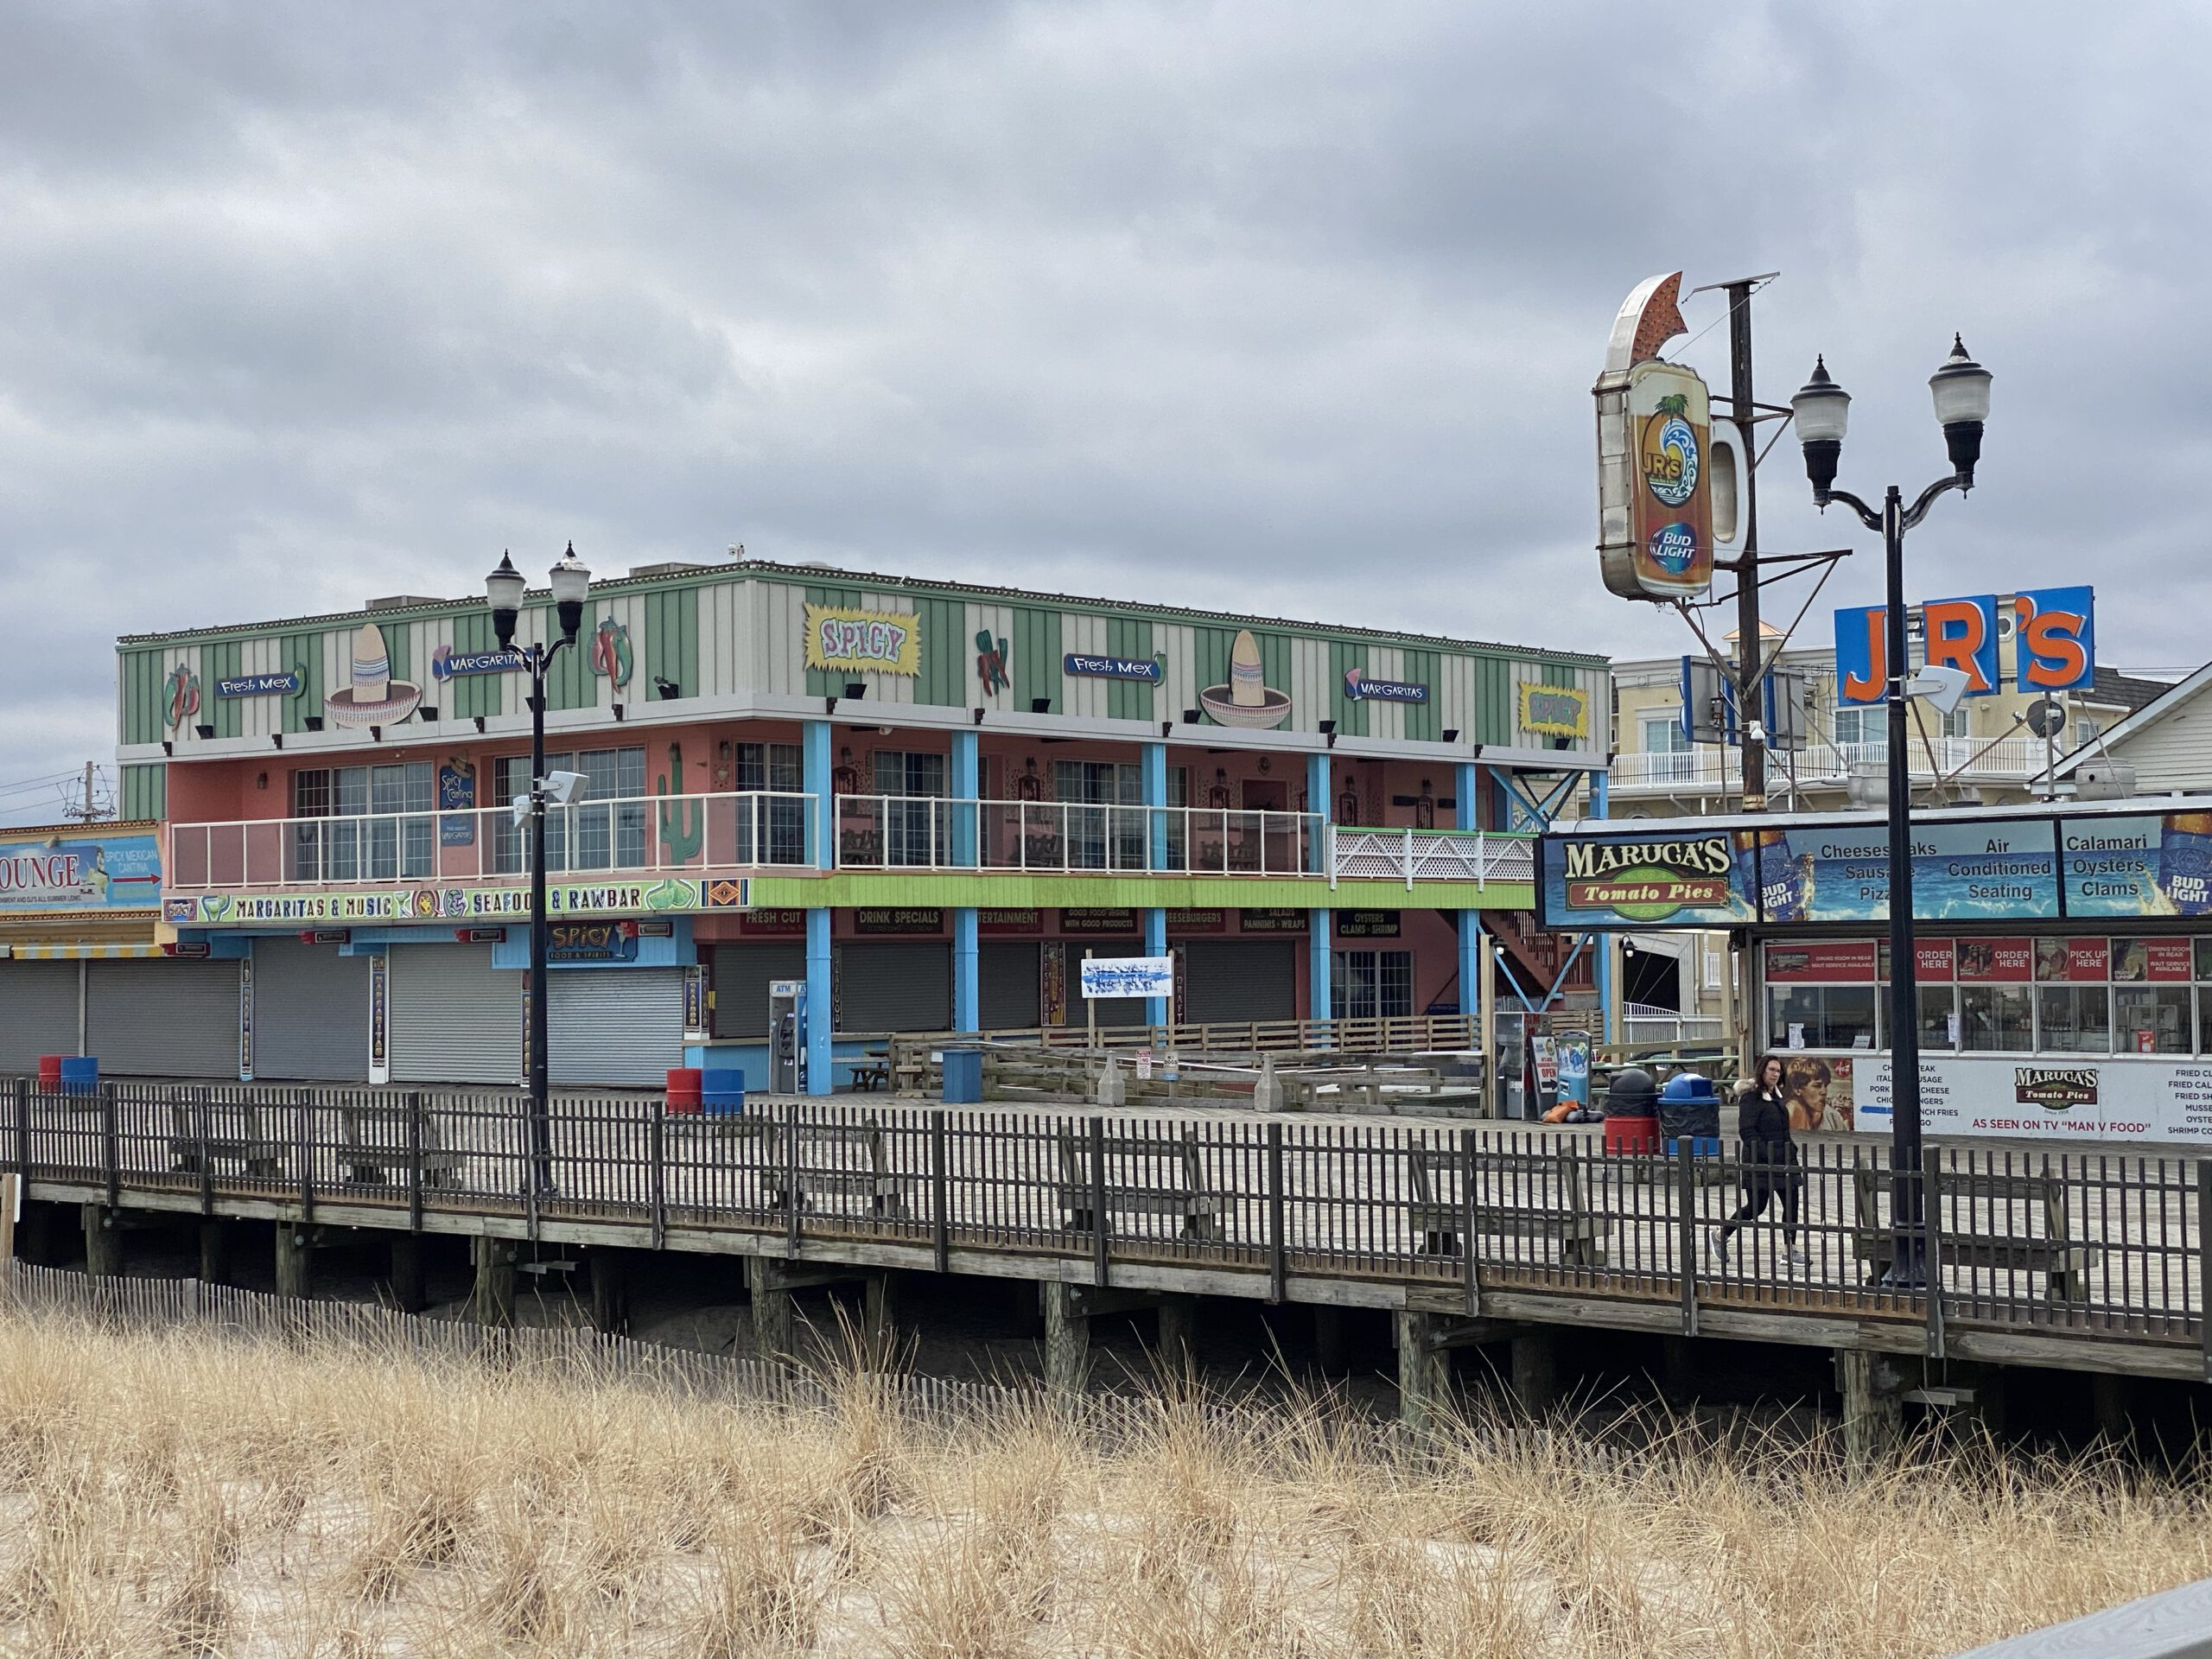 SEASIDE HEIGHTS: A Quite Spicy Patron at Spicy's!